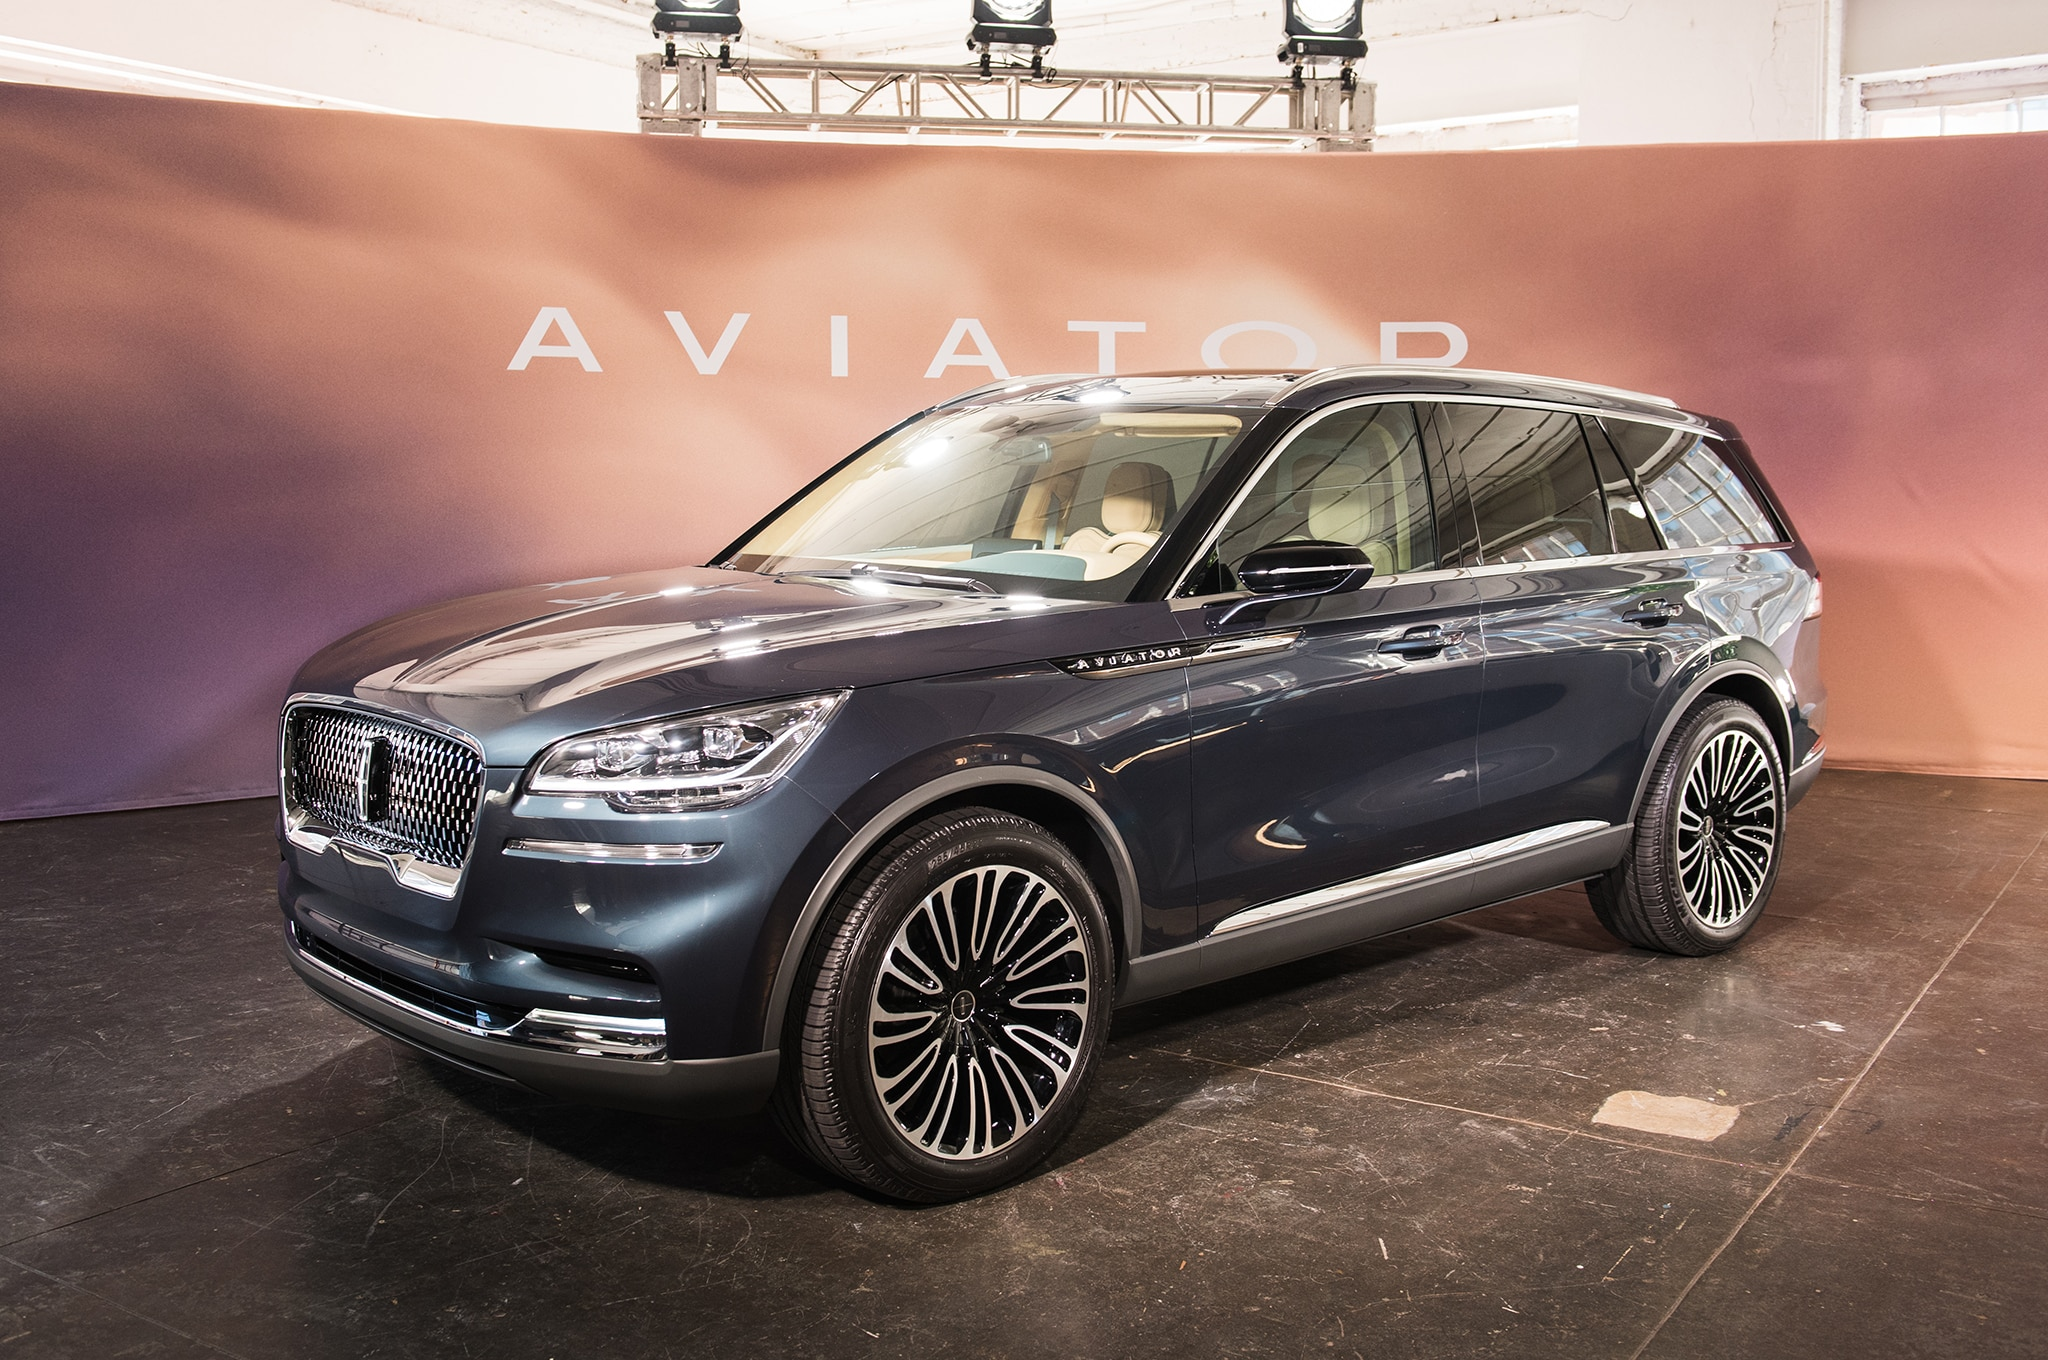 Nearest Gas Stations >> Seven Things About the New Lincoln Aviator | Automobile Magazine